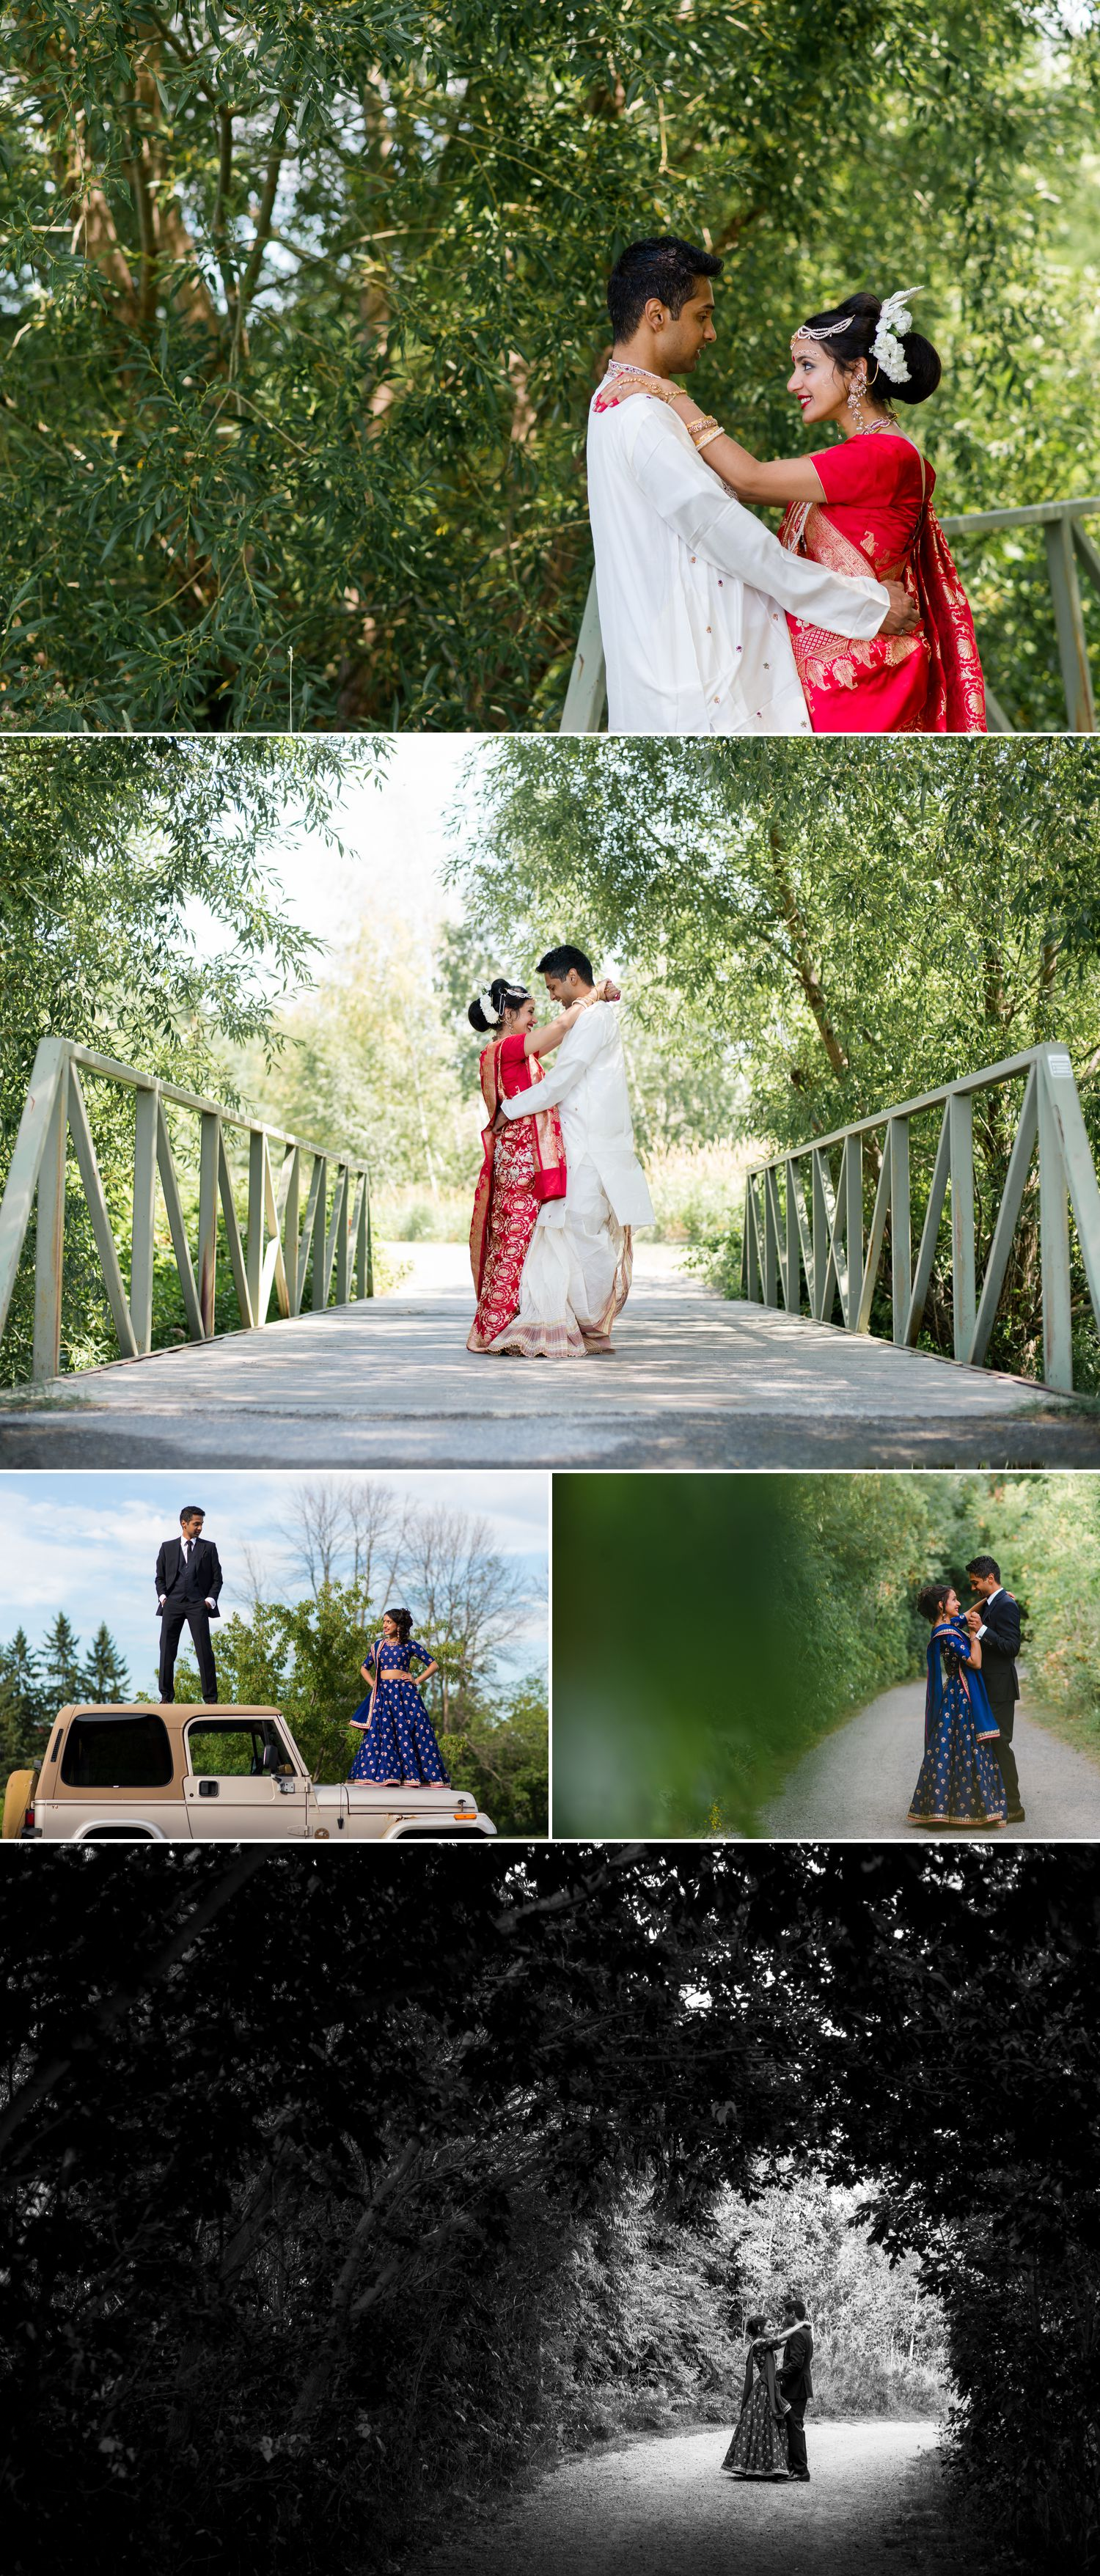 Portraits of the bride and groom in both their traditional Indian Wedding and Reception outfits